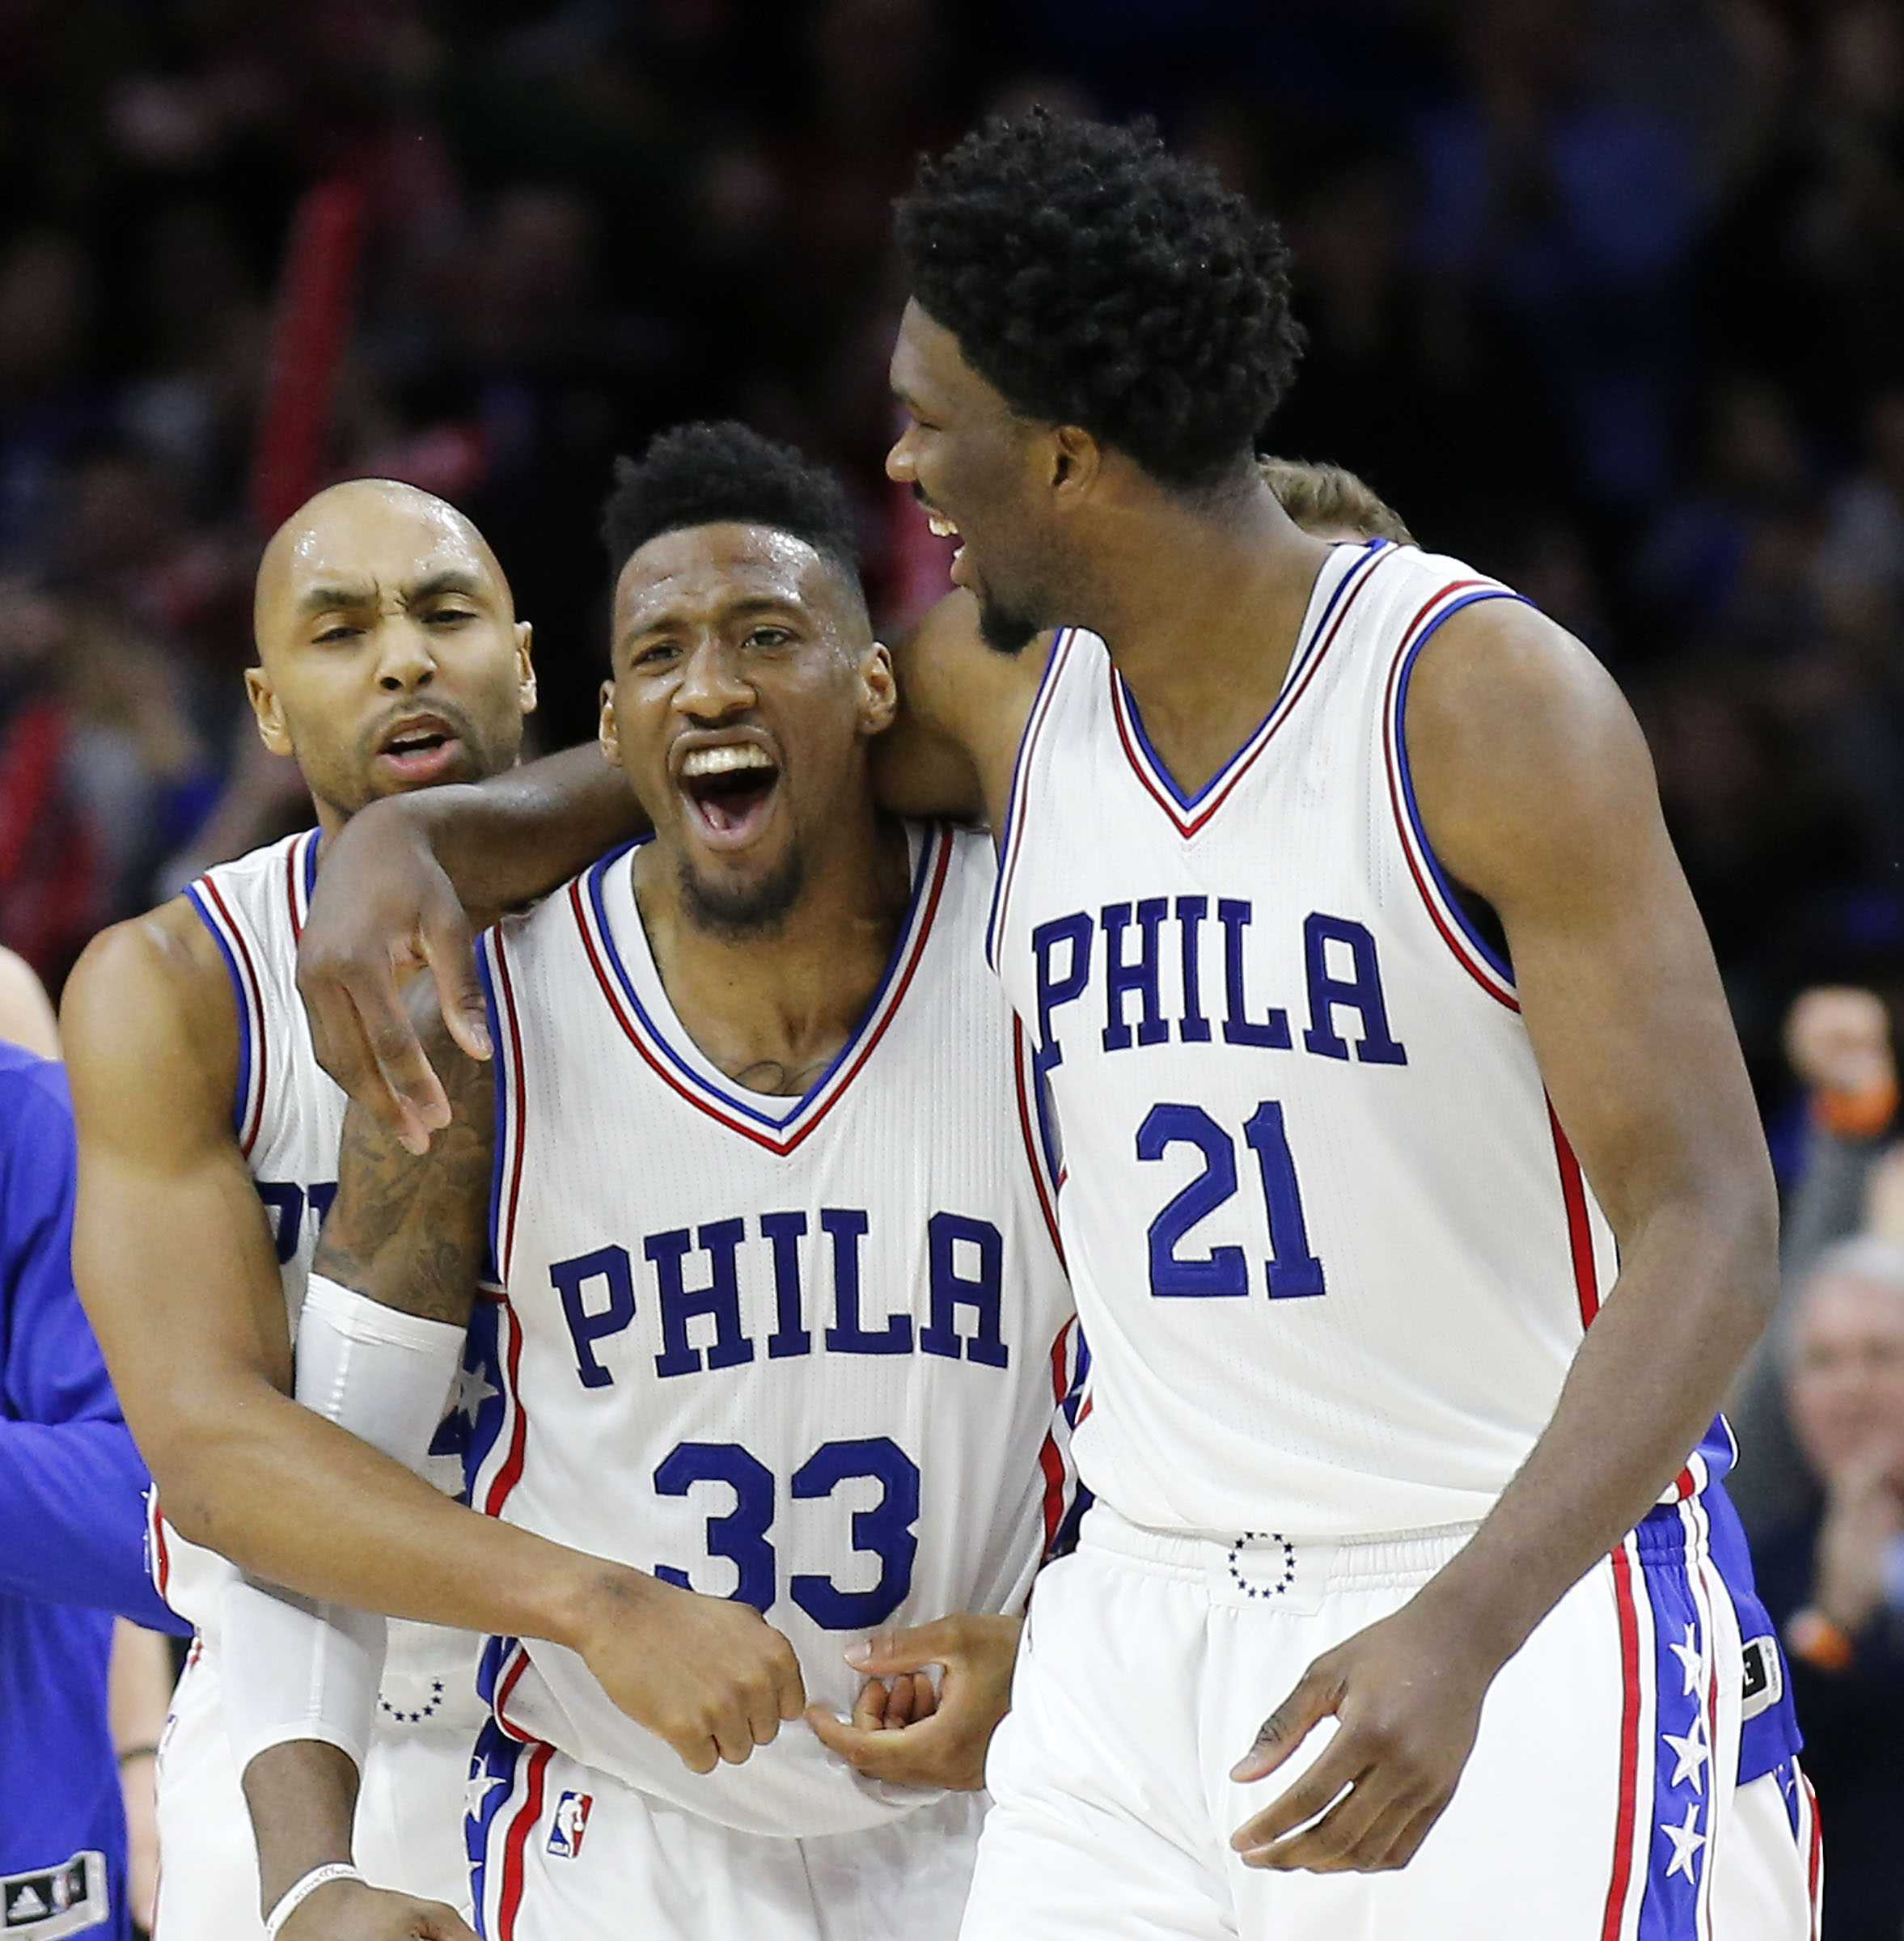 The Philadelphia 76ers' Robert Covington (33) celebrates with teammates Joel Embiid (21) and Gerald Henderson after a 93-92 win against the Portland Trail Blazers on Friday, Jan. 20, 2017, at the Wells Fargo Center in Philadelphia. (Yong Kim/Philadelphia Daily News/TNS)